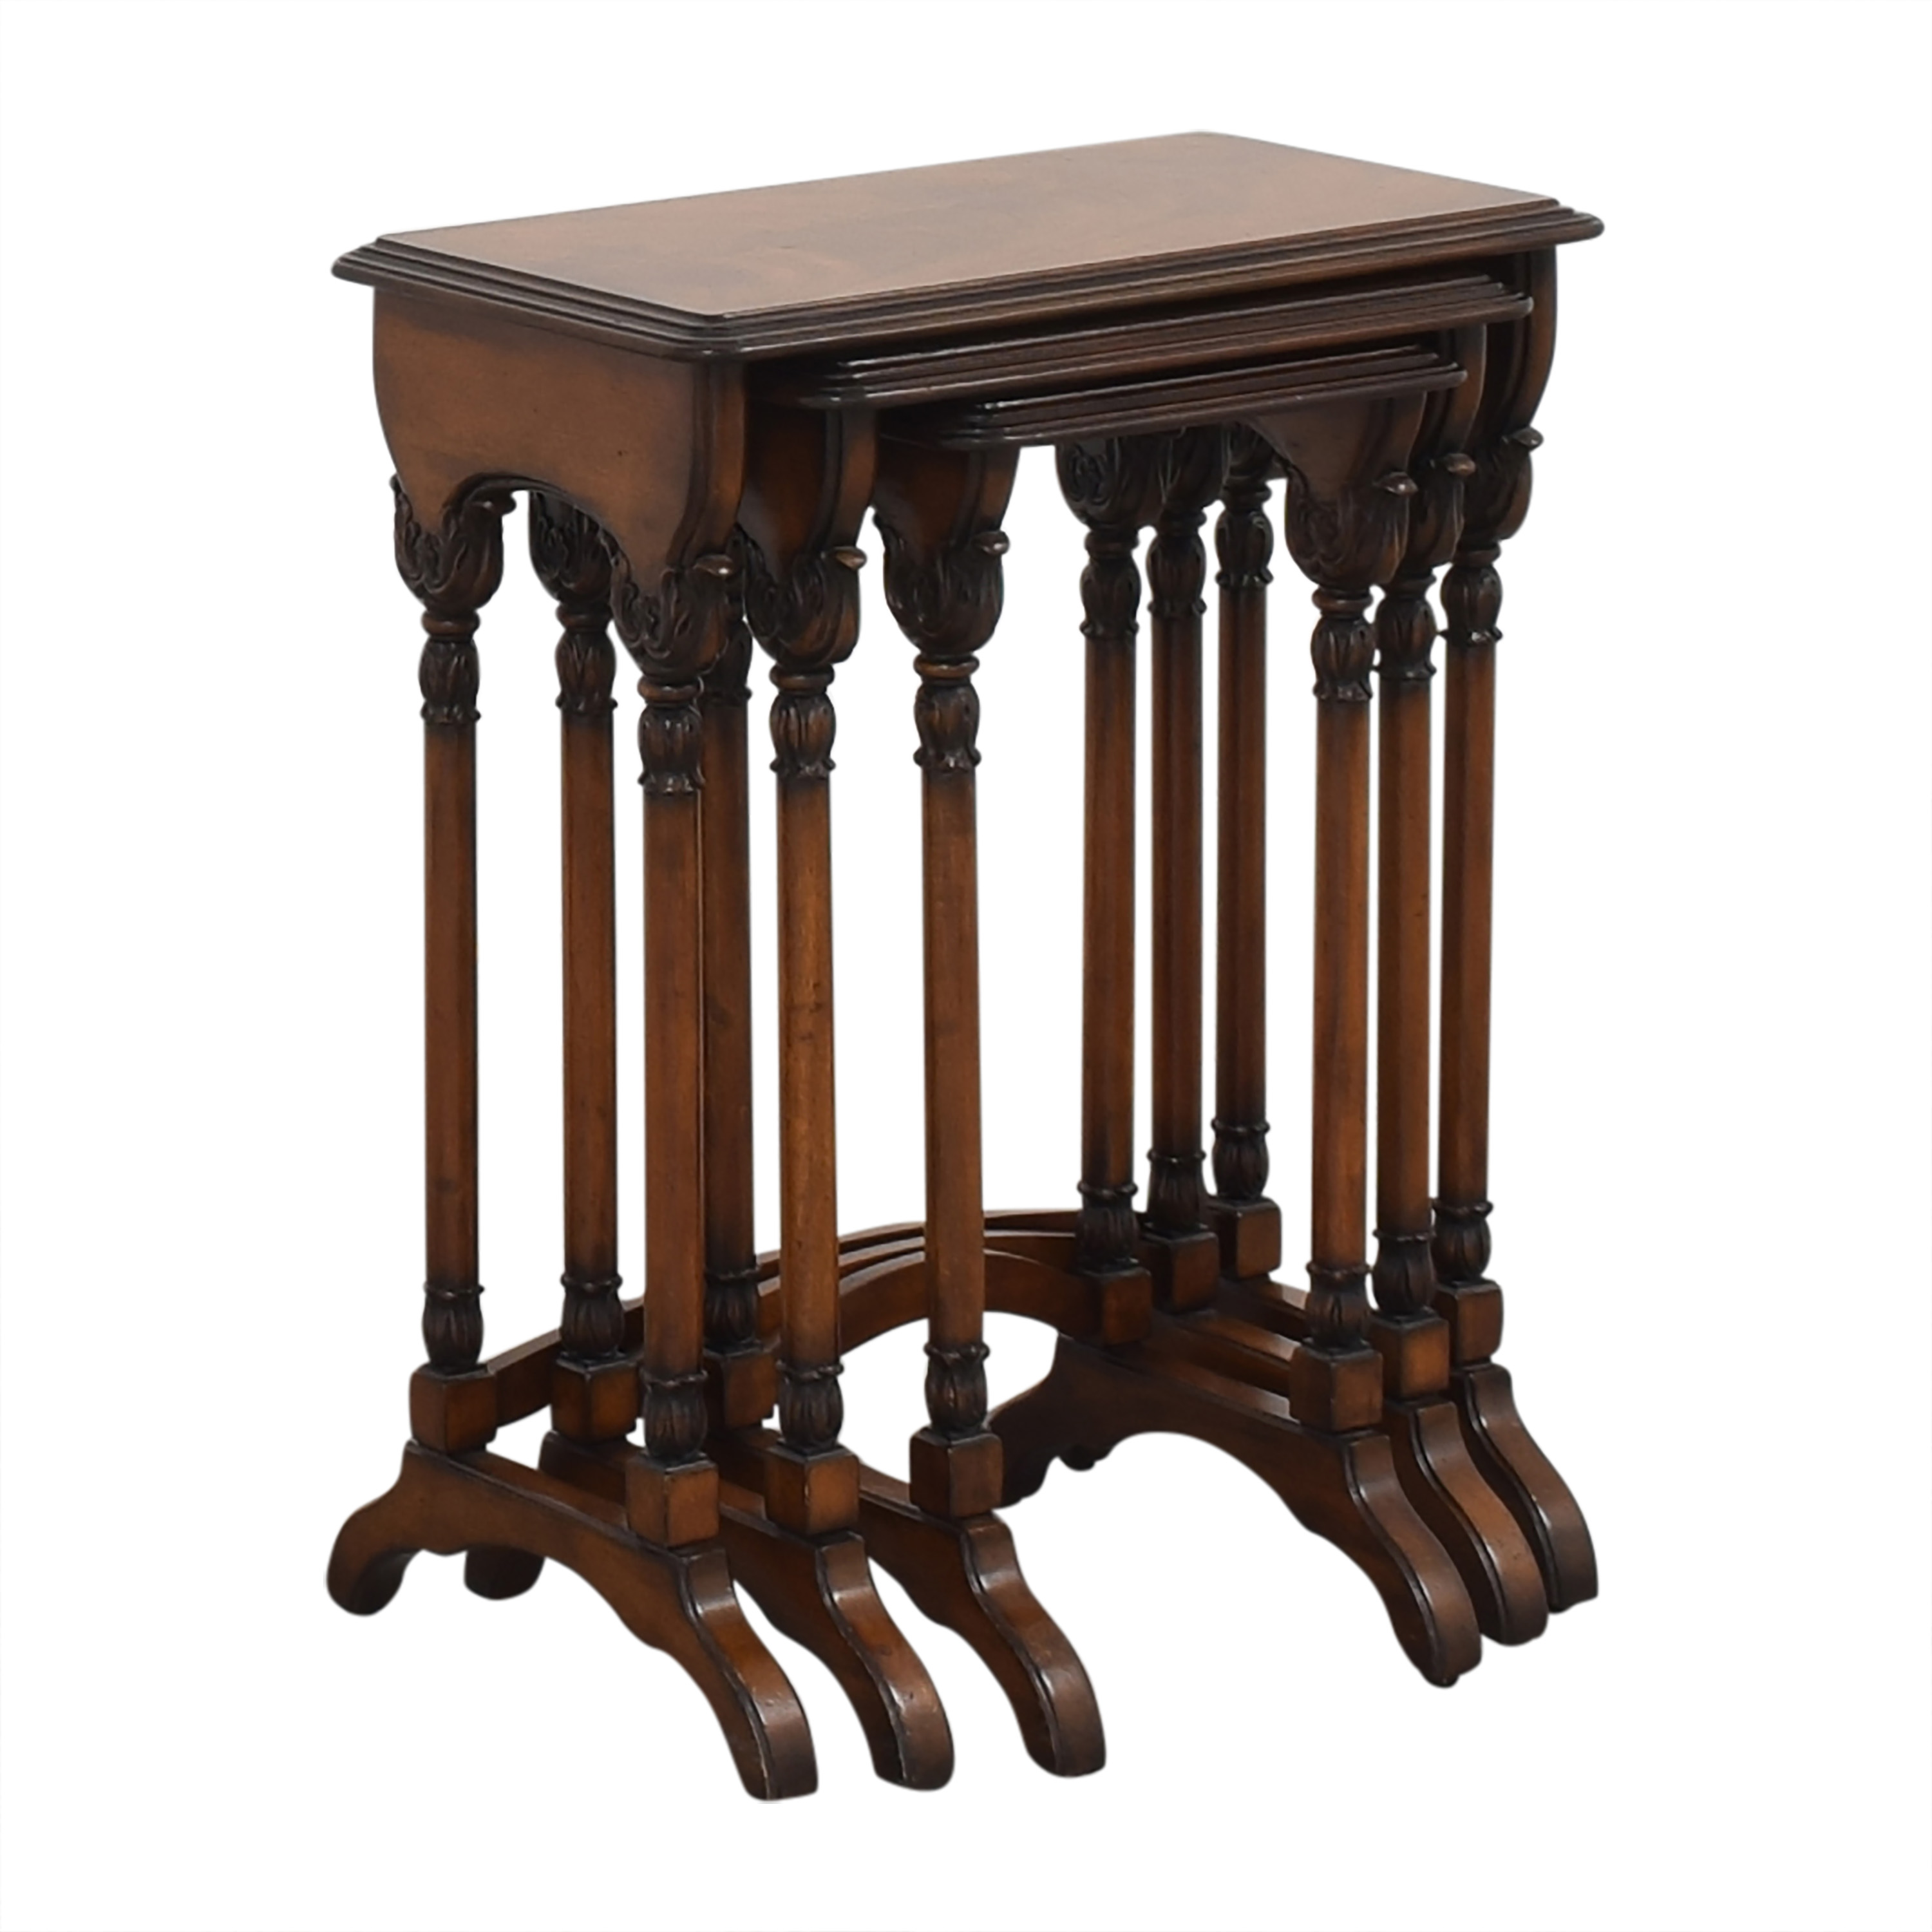 Maison 55 Country Manor Nesting End Tables